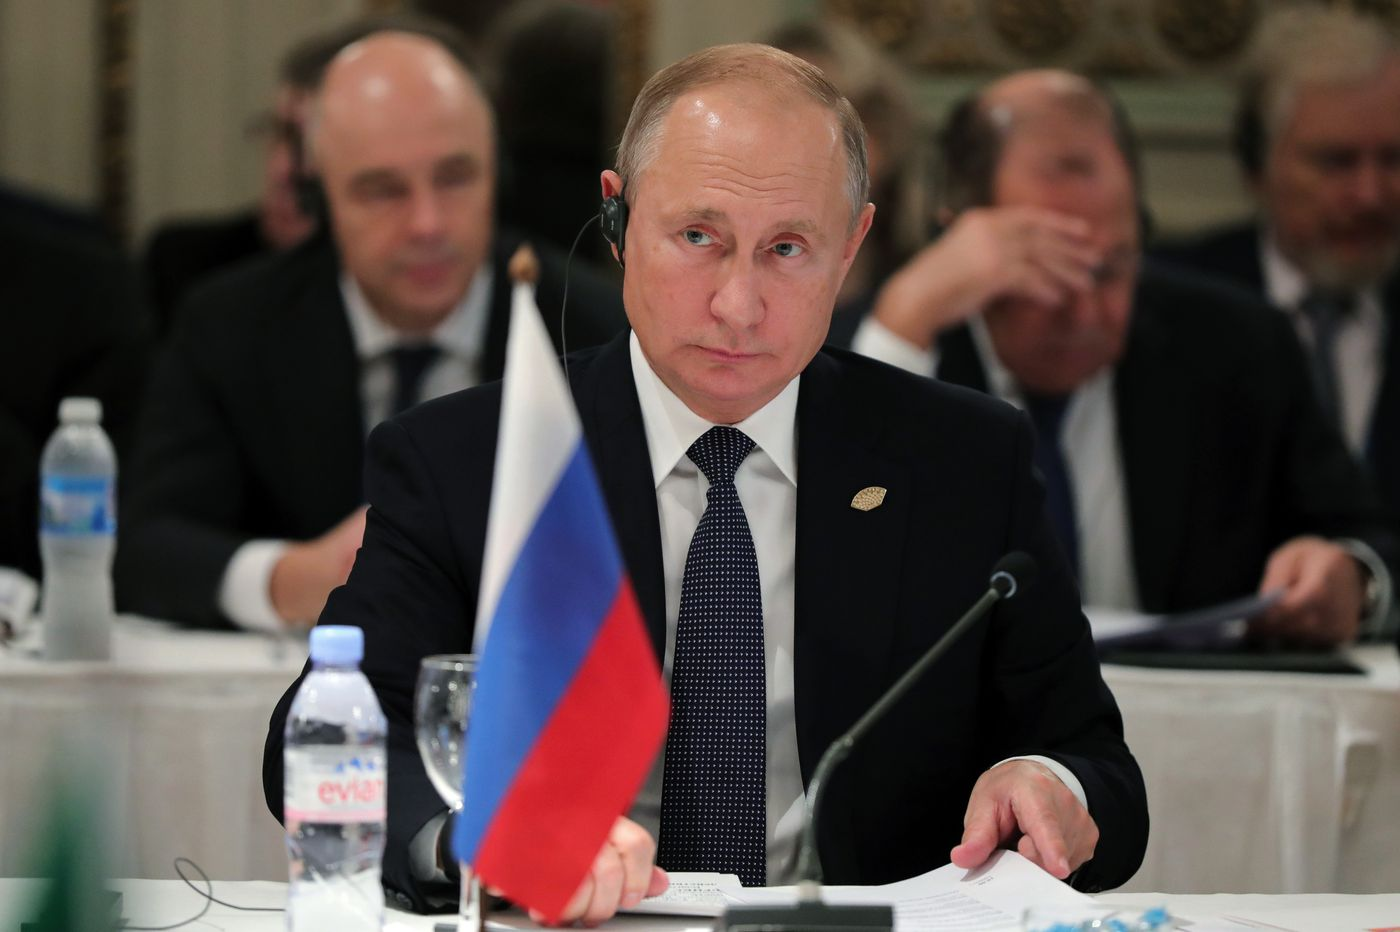 In the Middle East, Vladimir Putin is putting Russia back on the map